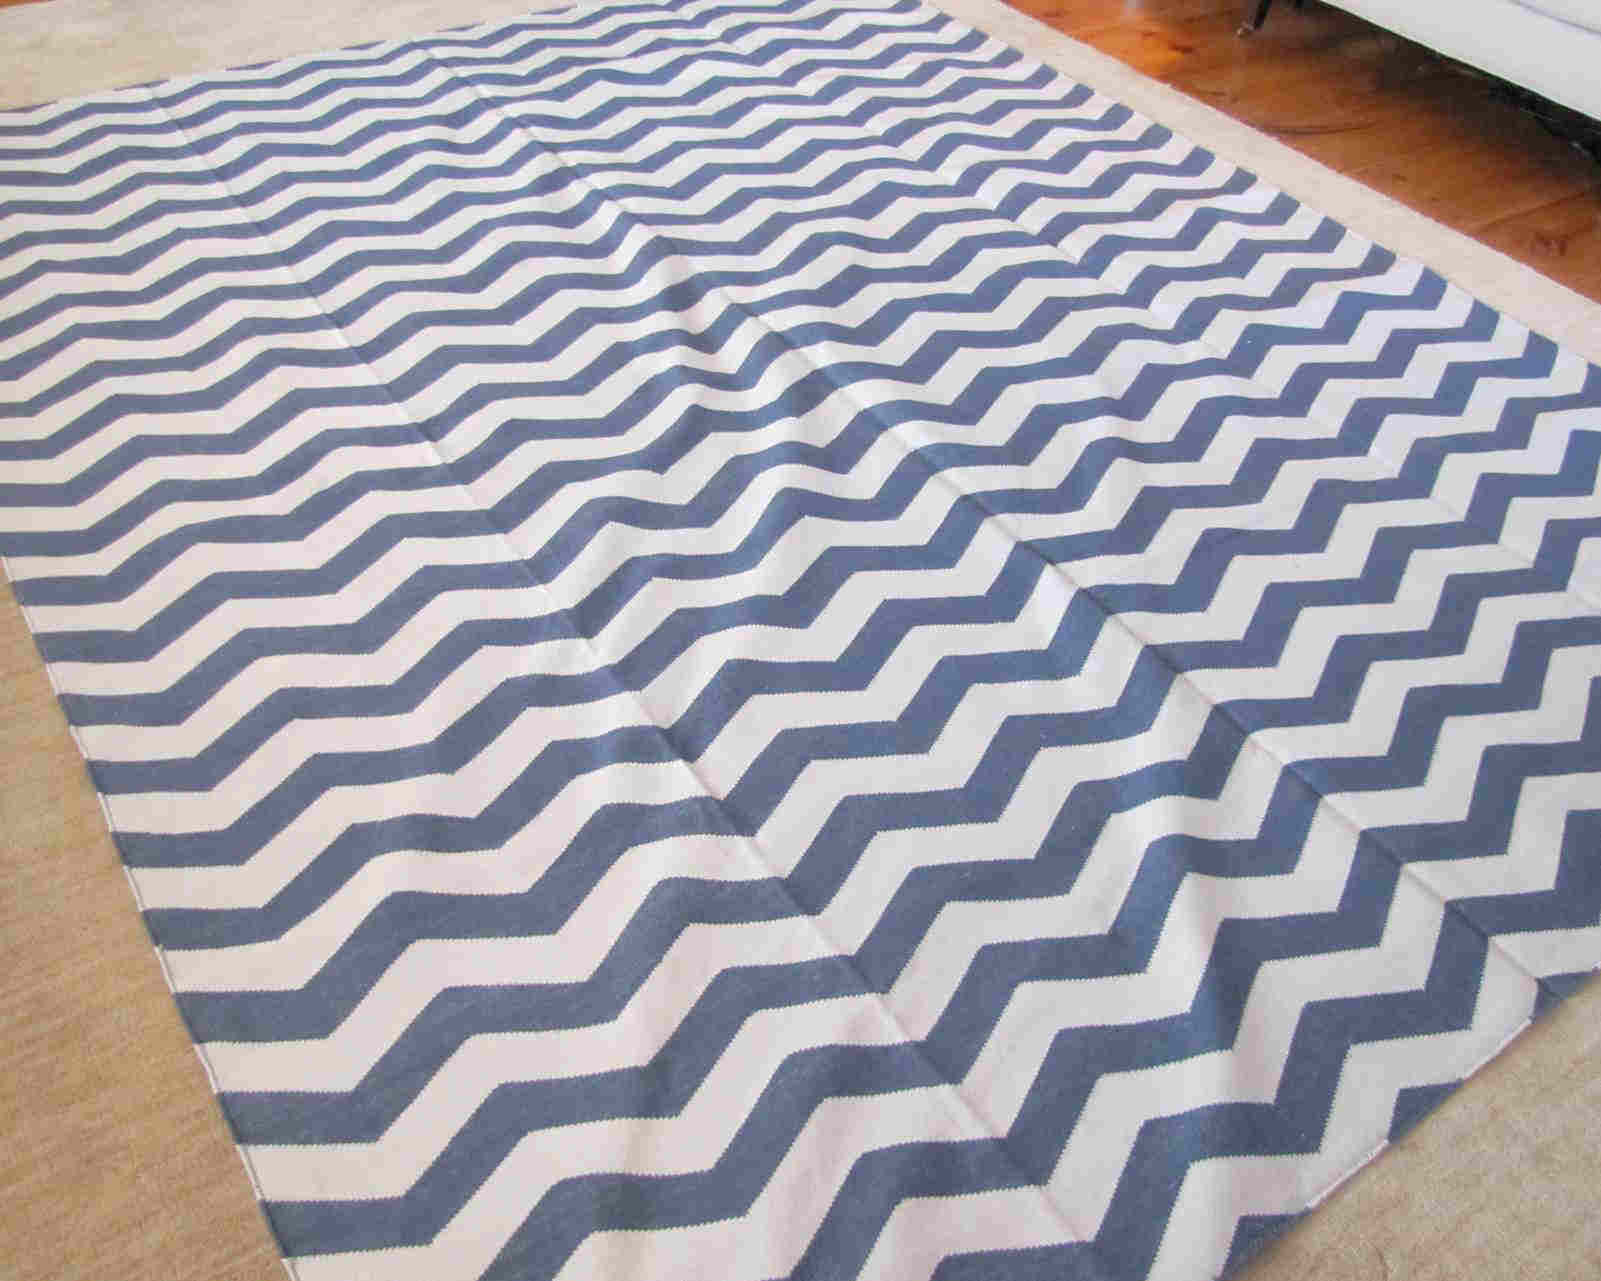 dhurrie rugs gallery PMKGIZQ